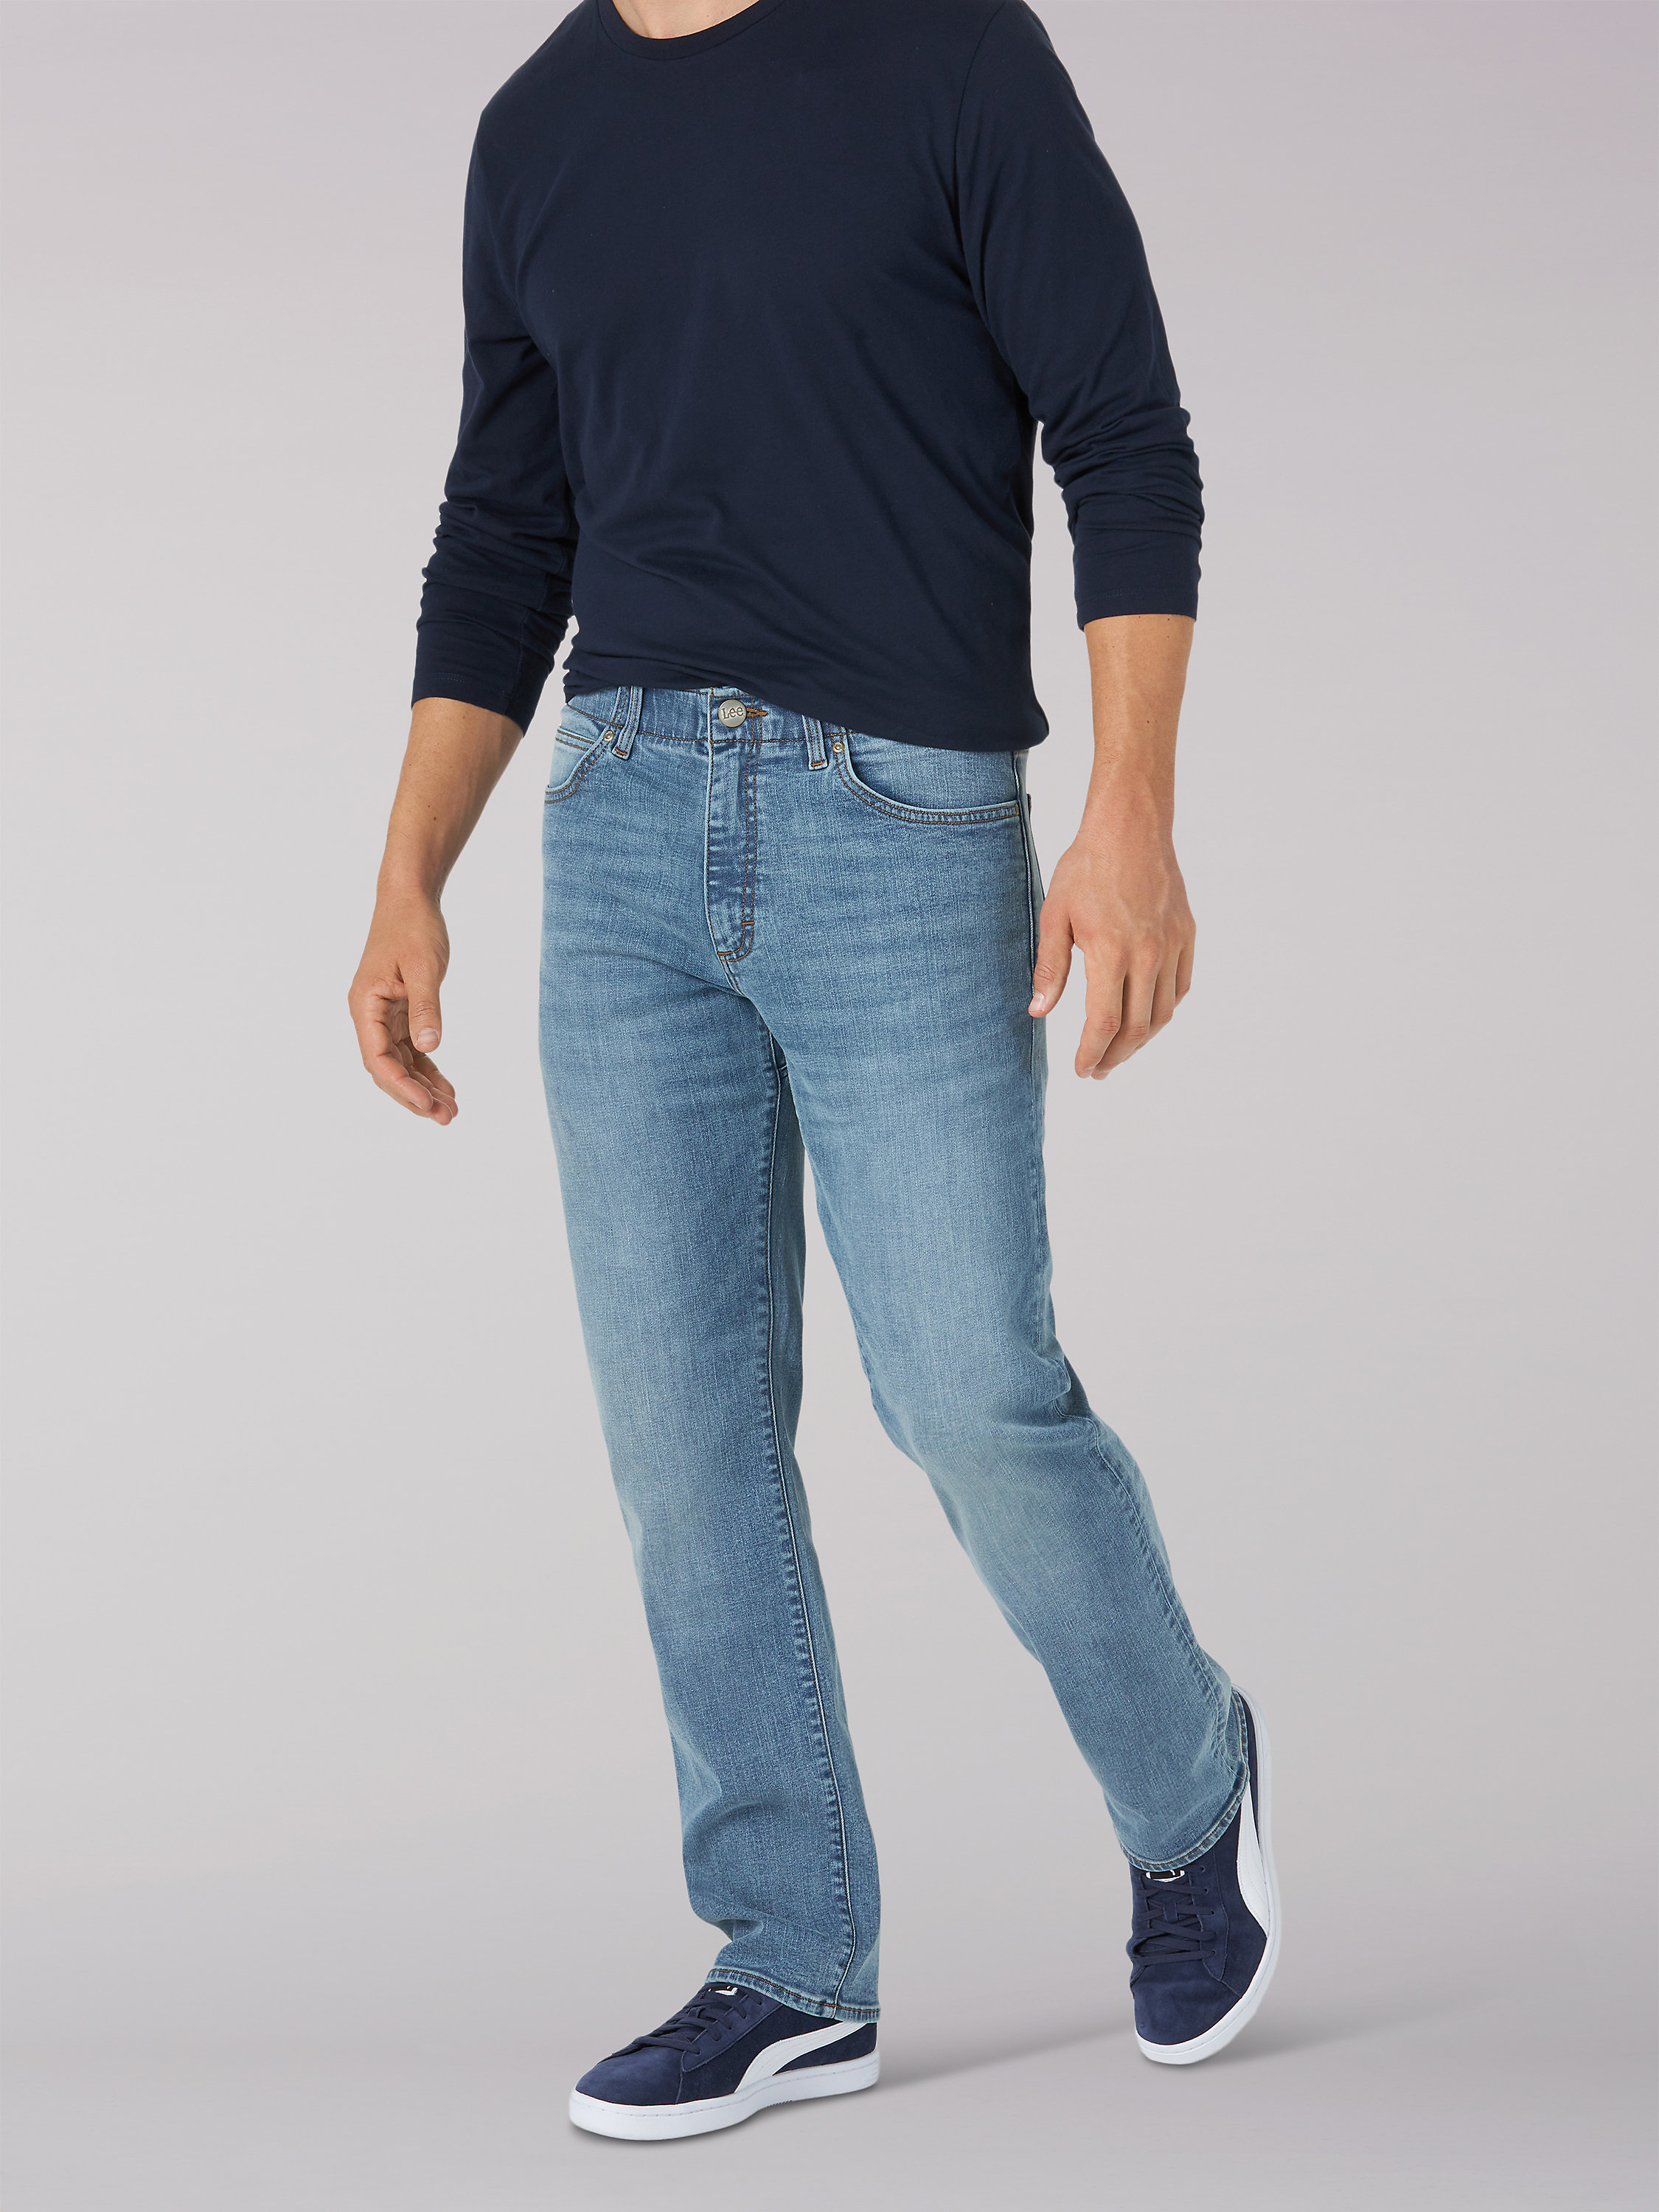 MEN'S EXTREME MOTION REGULAR FIT STRAIGHT LEG JEAN